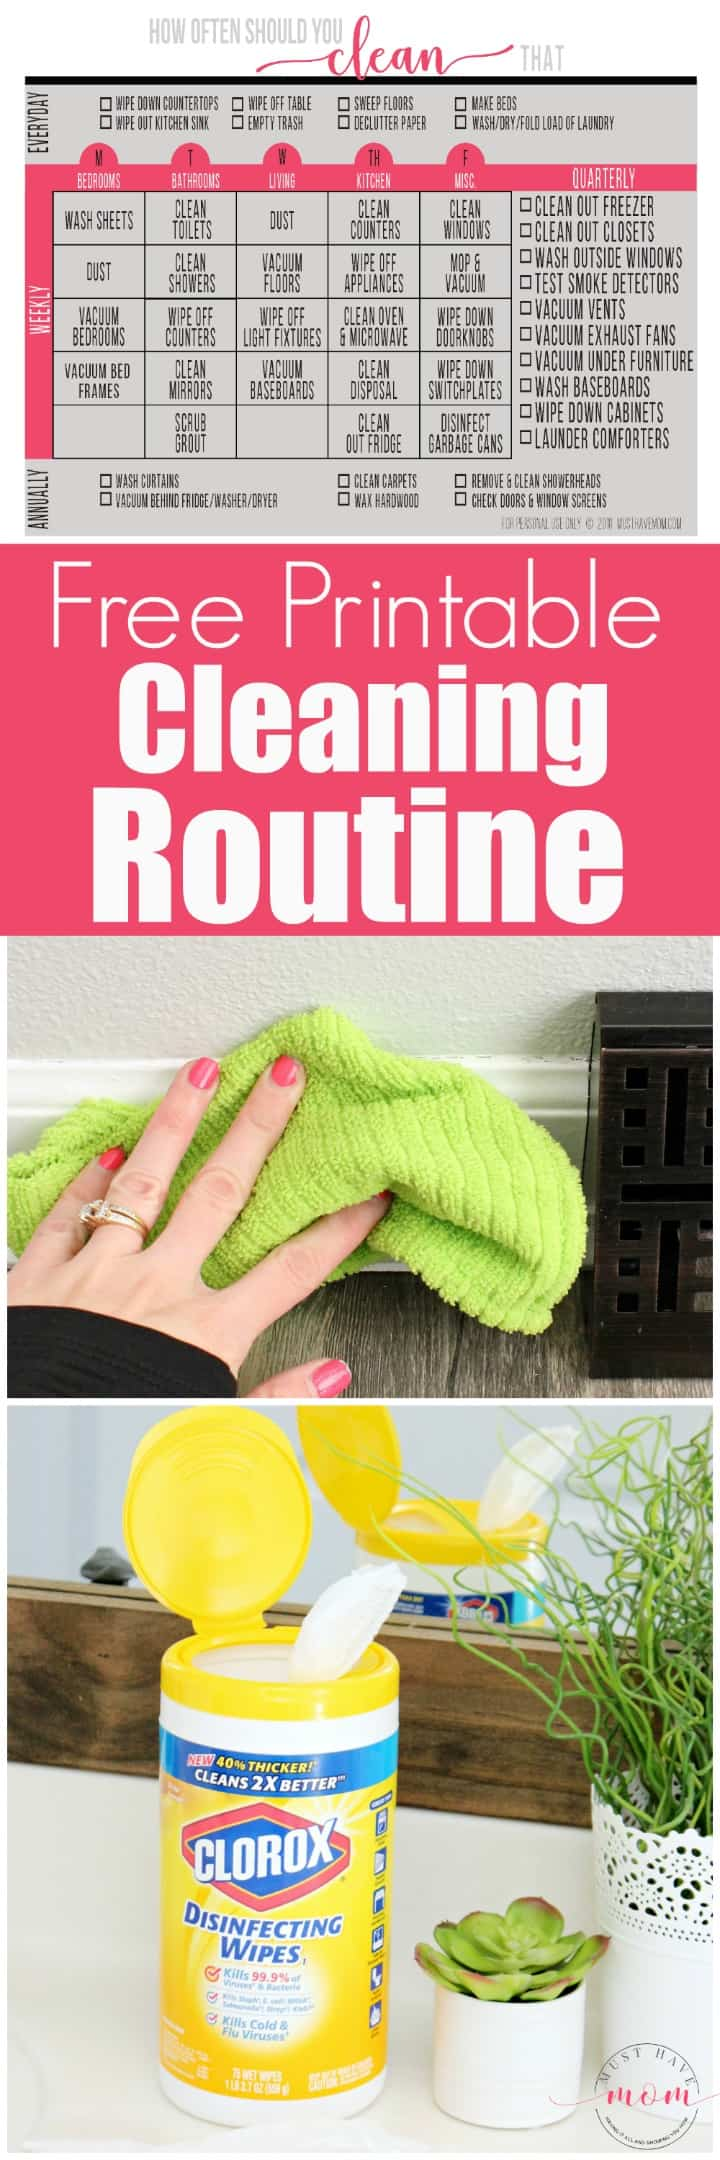 How often should you clean that? Free cleaning routine printable to keep your house clean in less time.